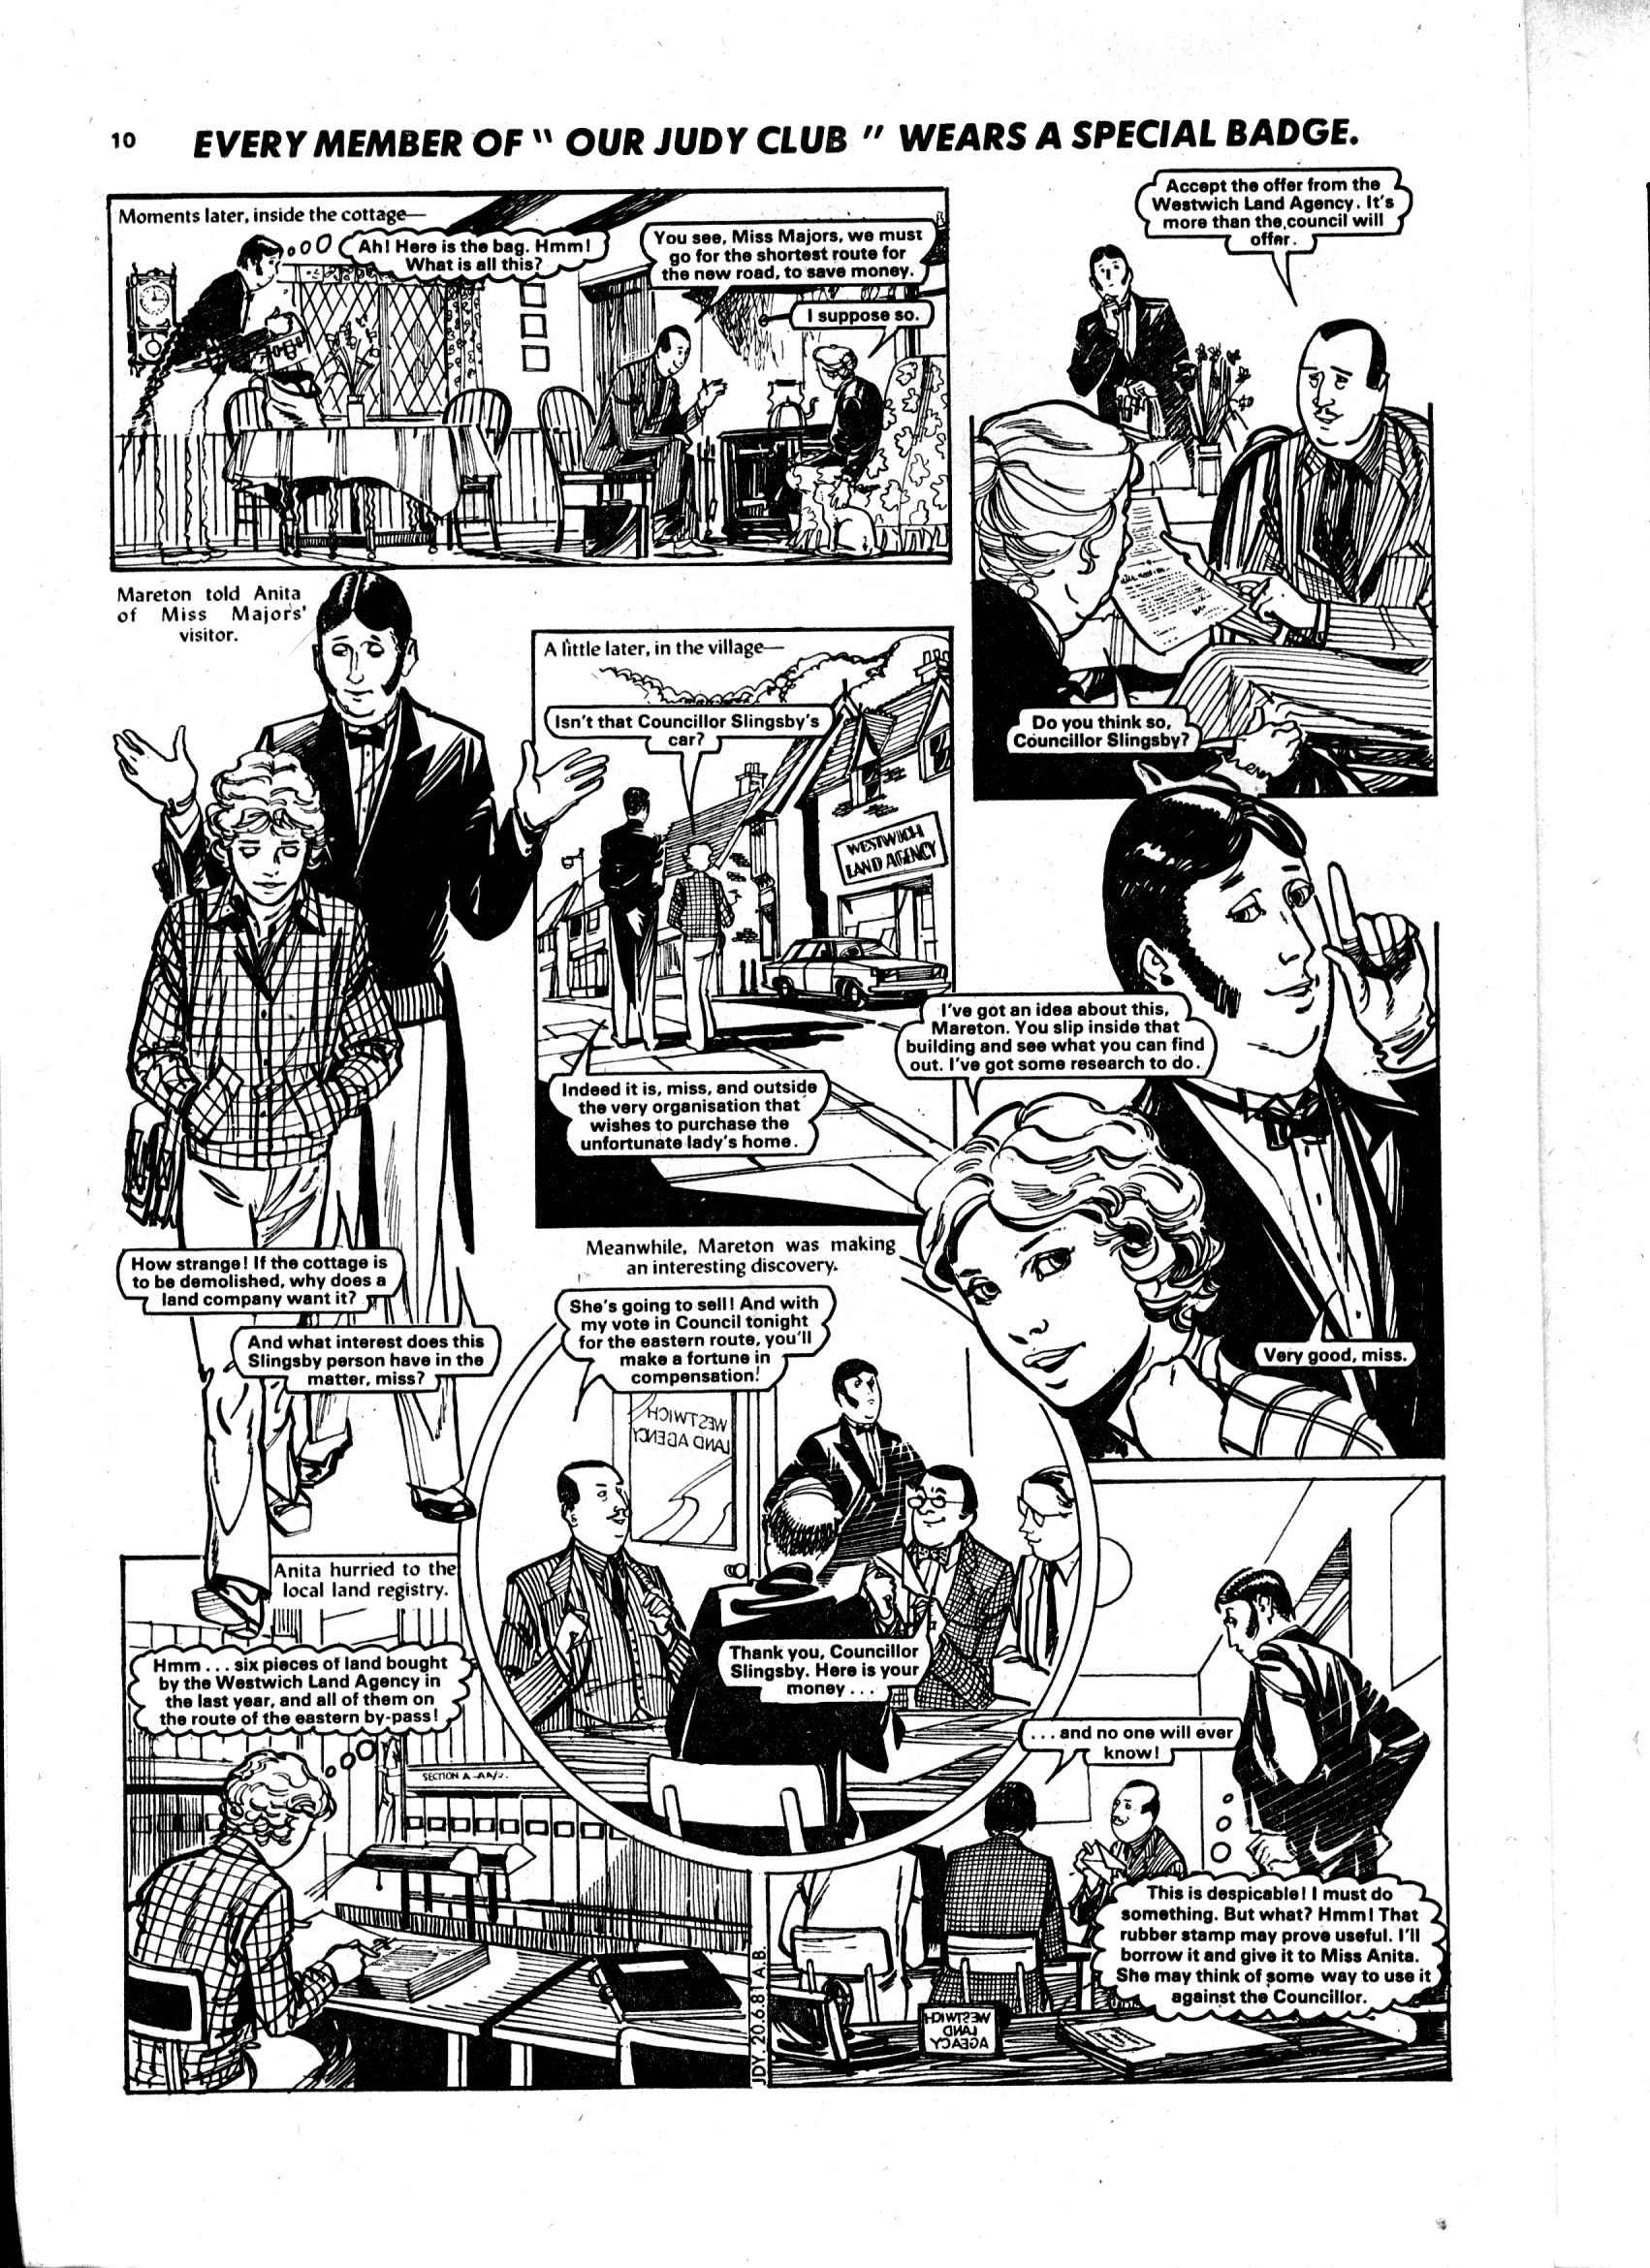 Read online Judy comic -  Issue #1119 - 10